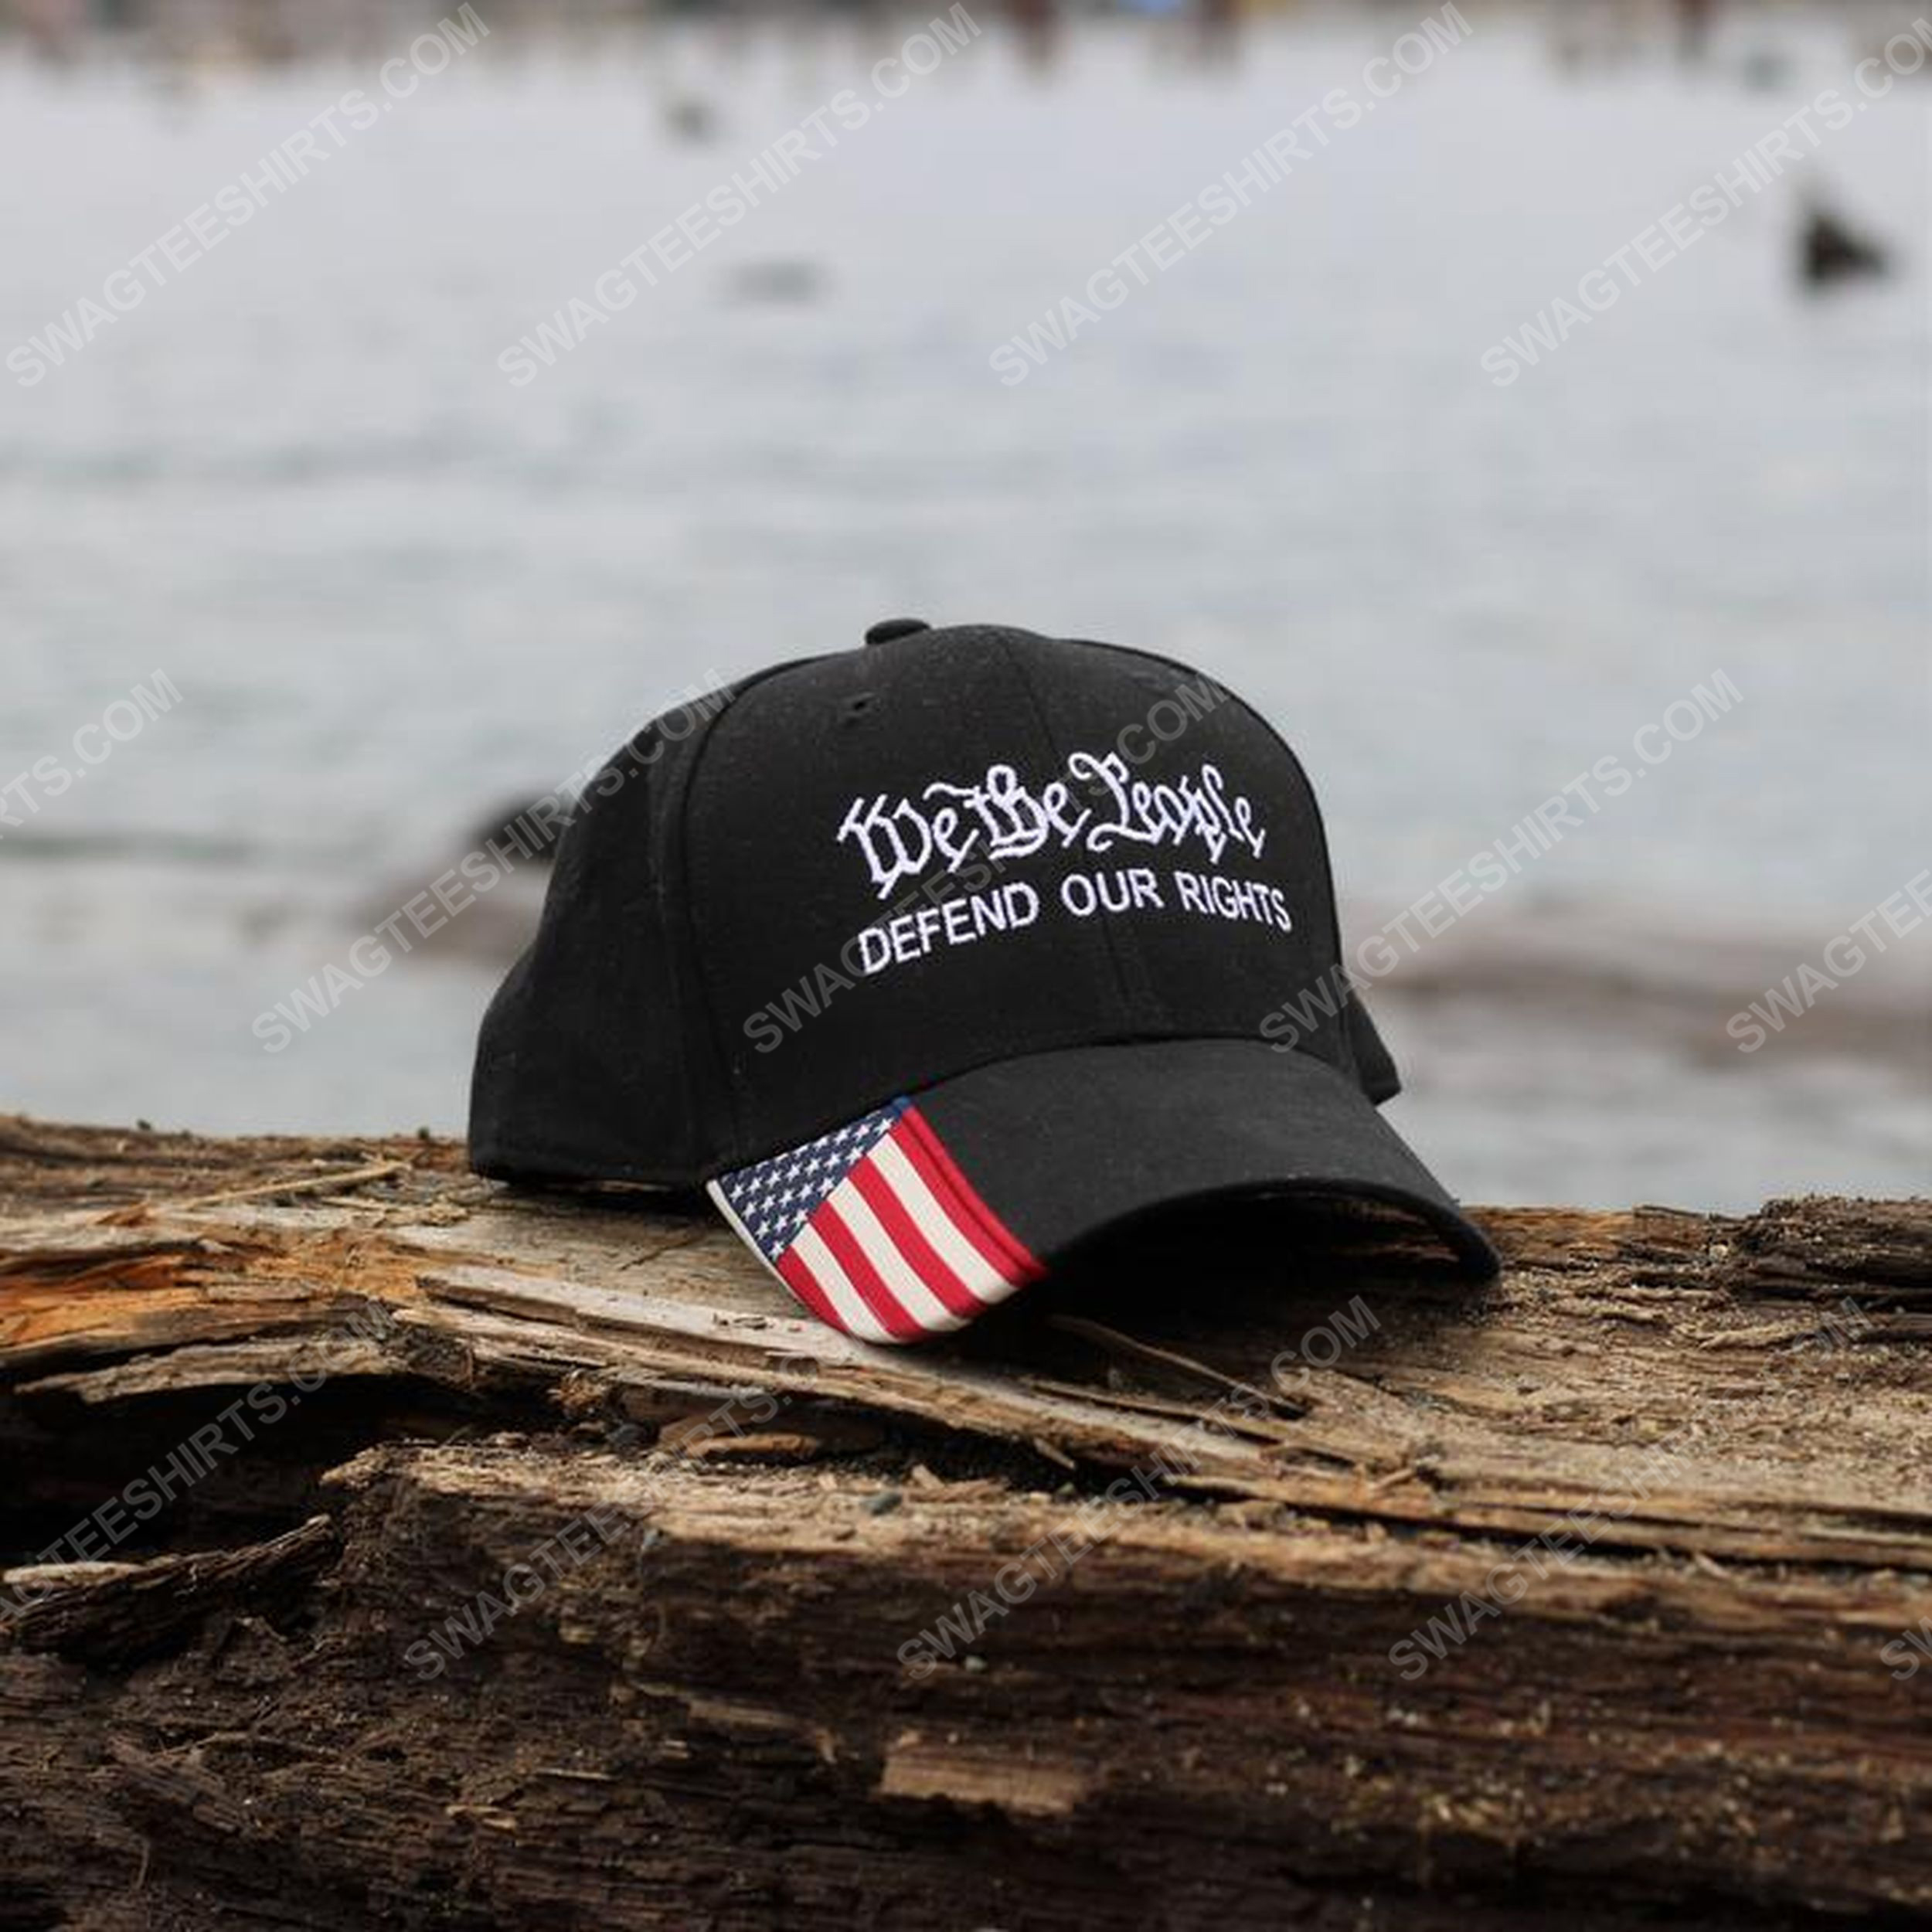 We the people defend our rights american flag full print classic hat 1 - Copy (2)